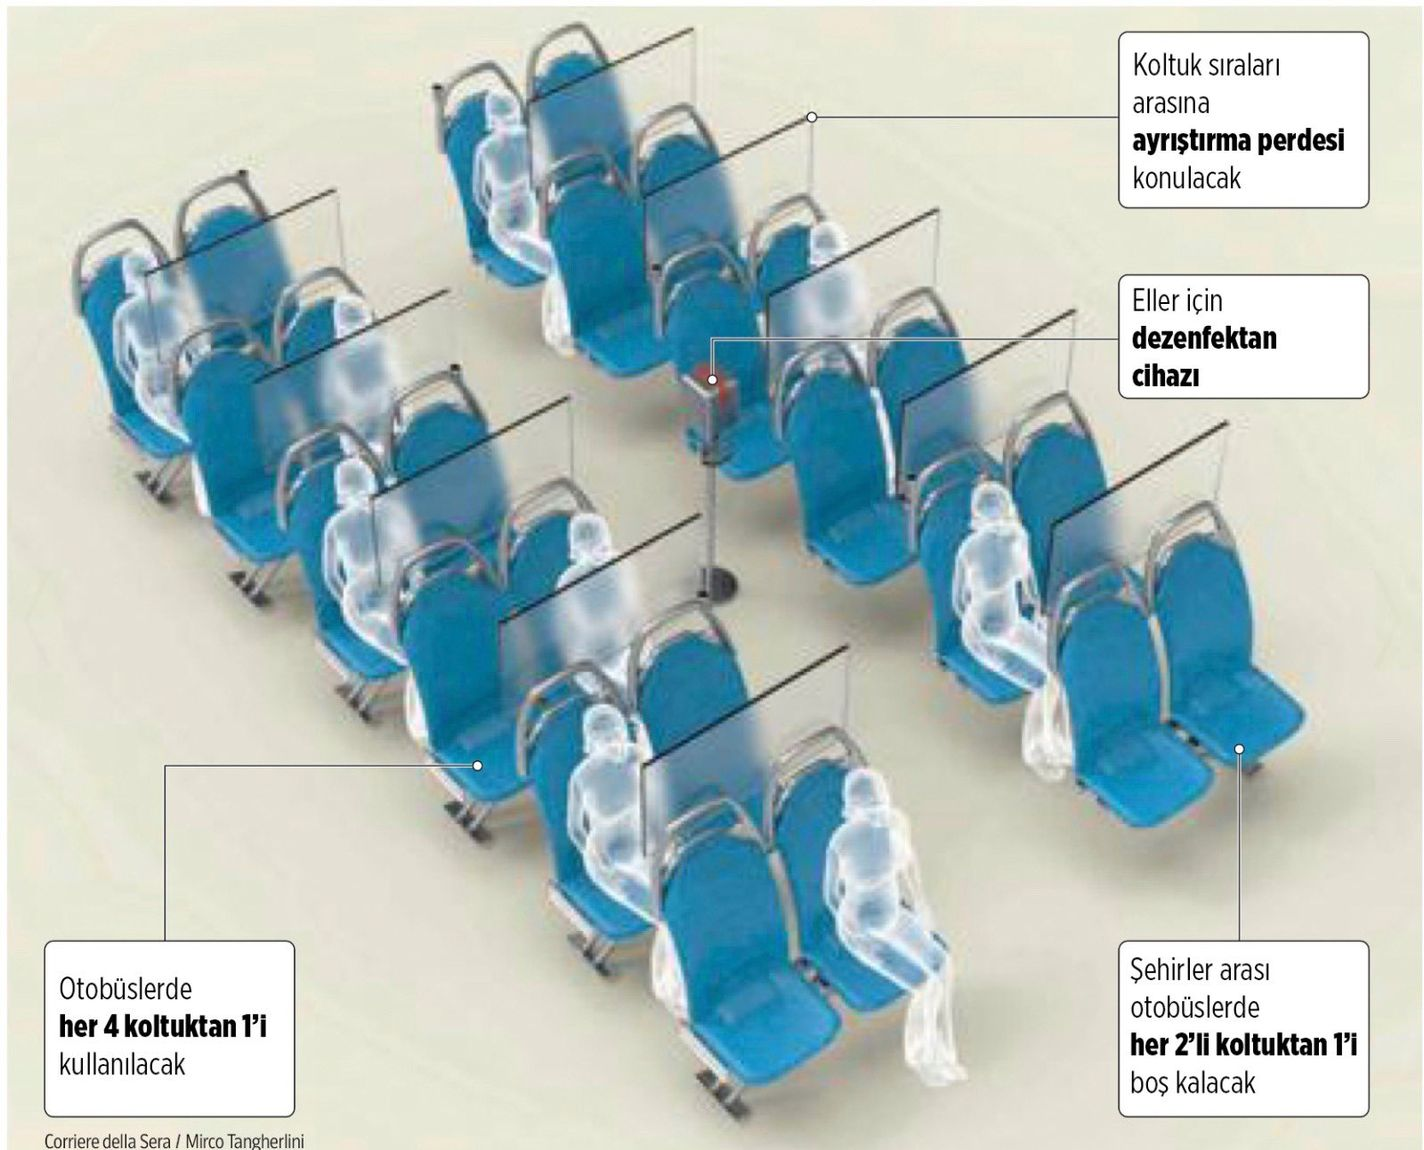 Seating Arrangements in Bus After Coronary Virus in Italy